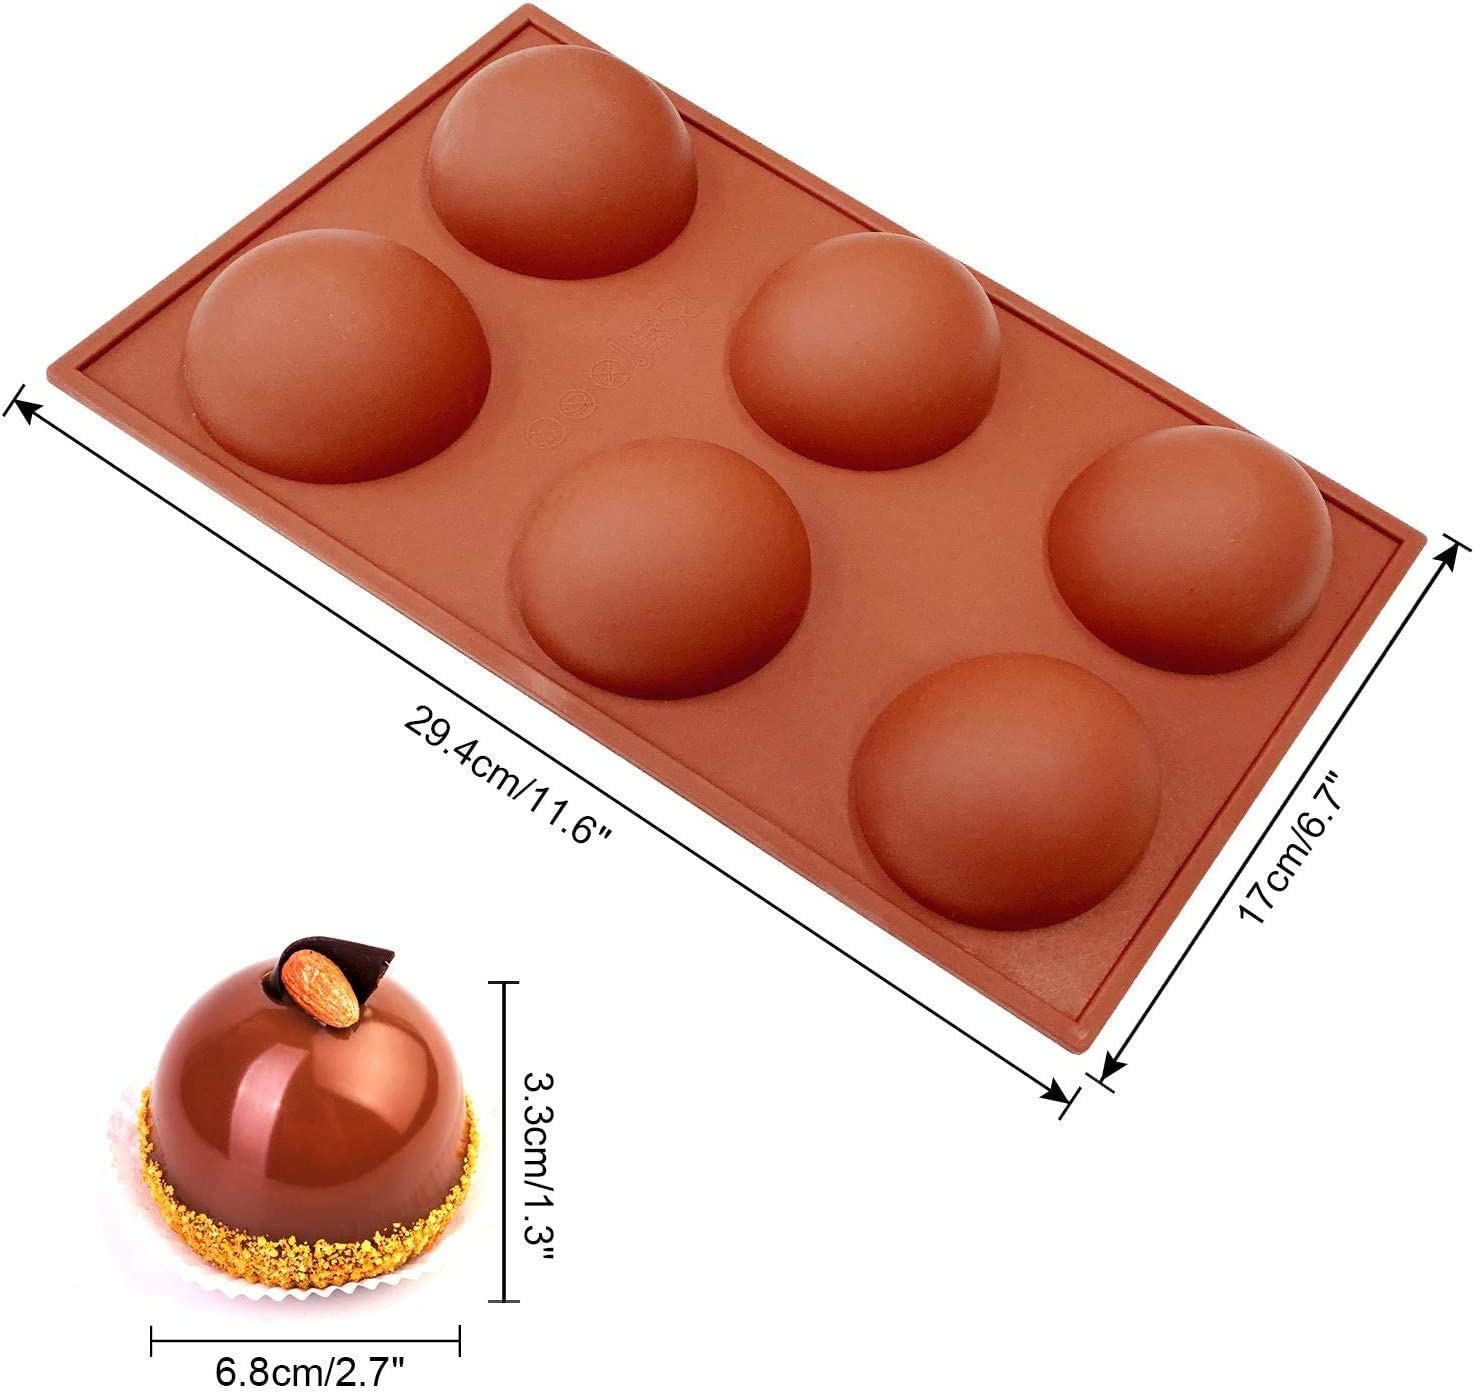 2 Packs 6 Holes Semi Sphere Silicone Mold Dome Mousse Jelly Coffee Large Baking Mold for Making Chocolate Cake